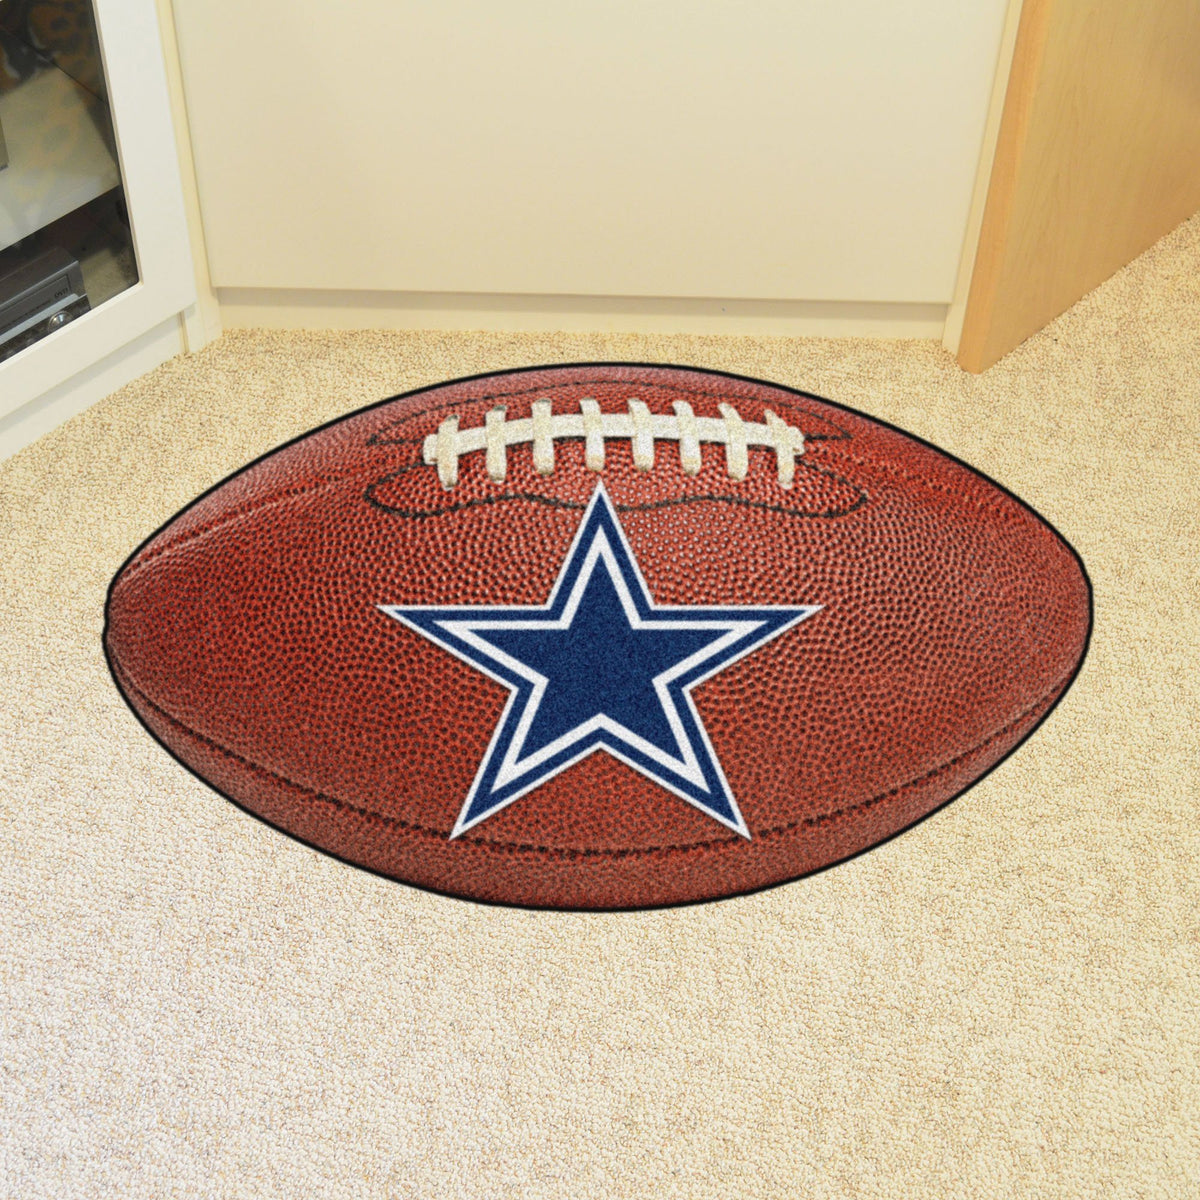 NFL - Football Mat NFL Mats, Custom Shape Rugs, Football Mat, NFL, Home Fan Mats Dallas Cowboys